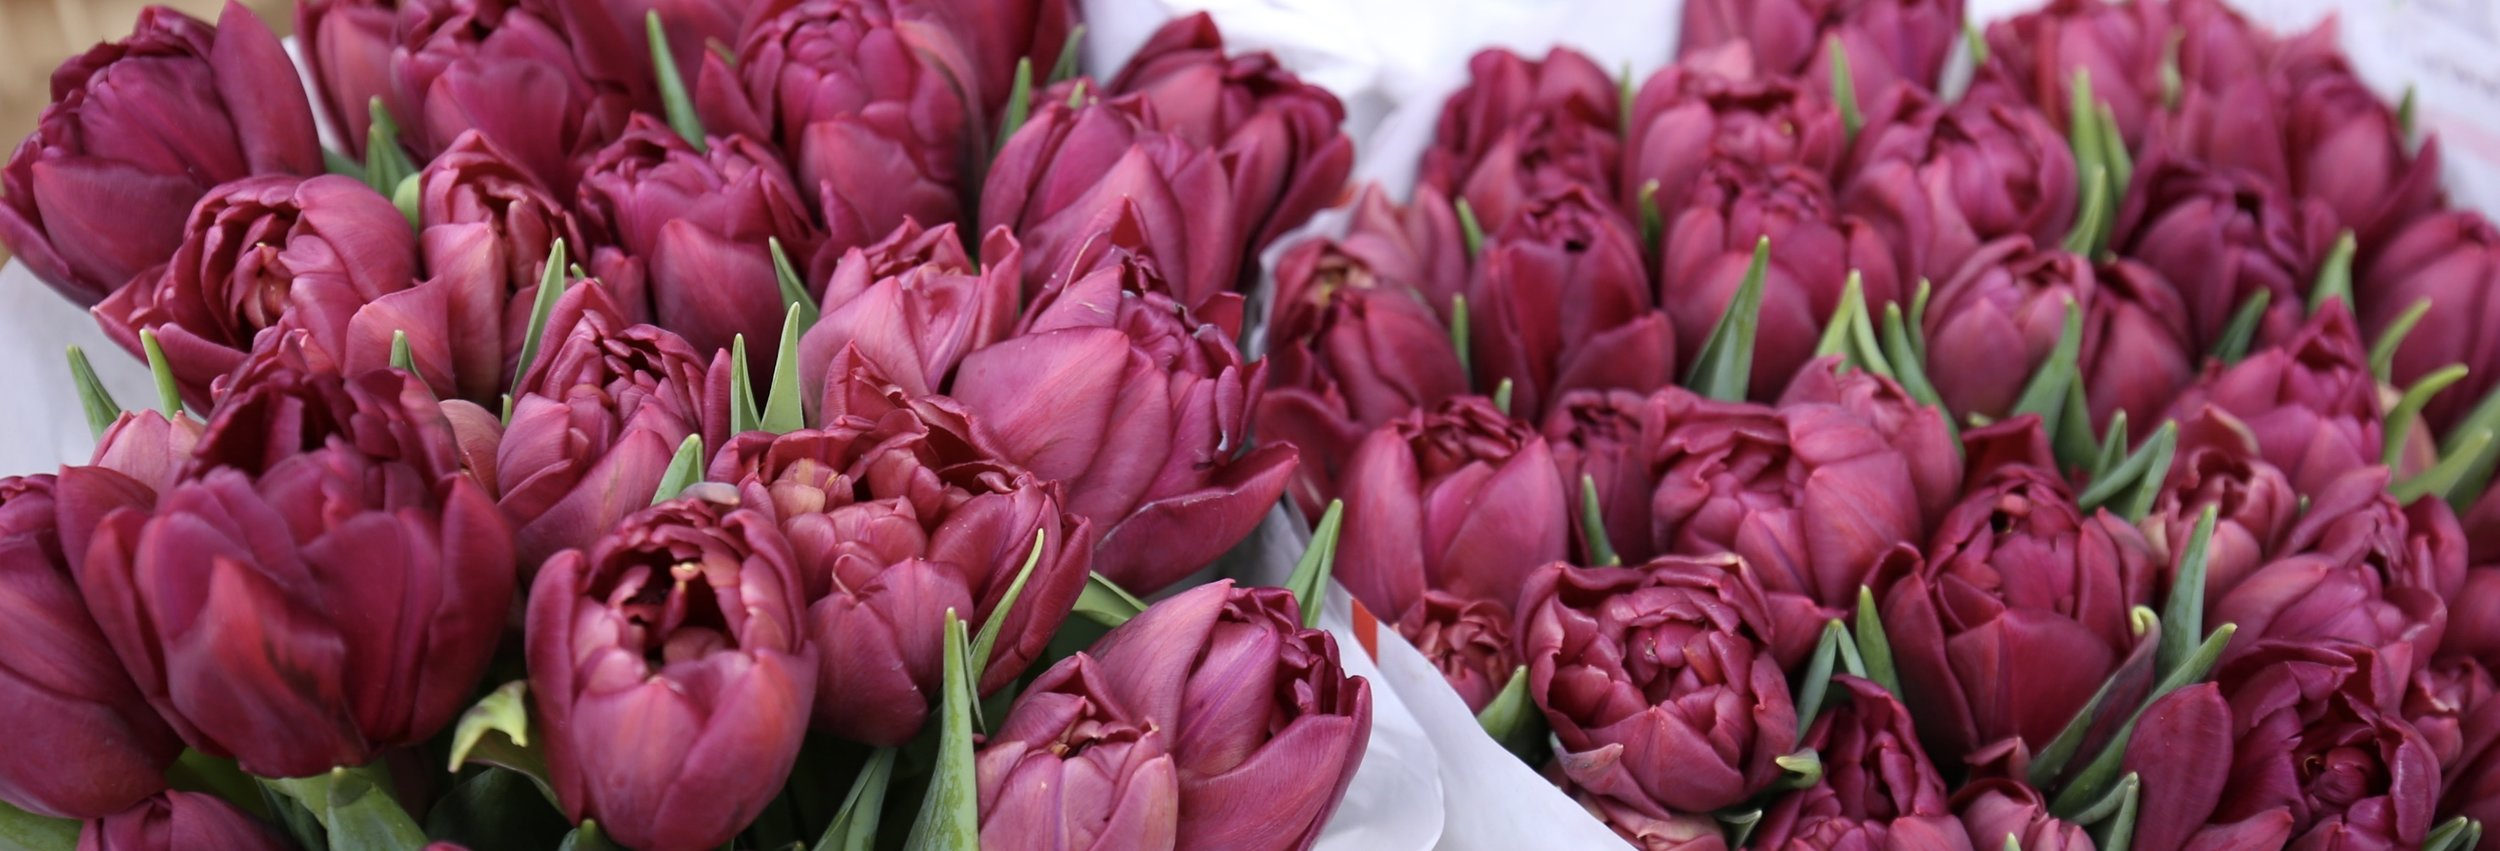 Magenta tulips all crowded together in the dutch flower markets.